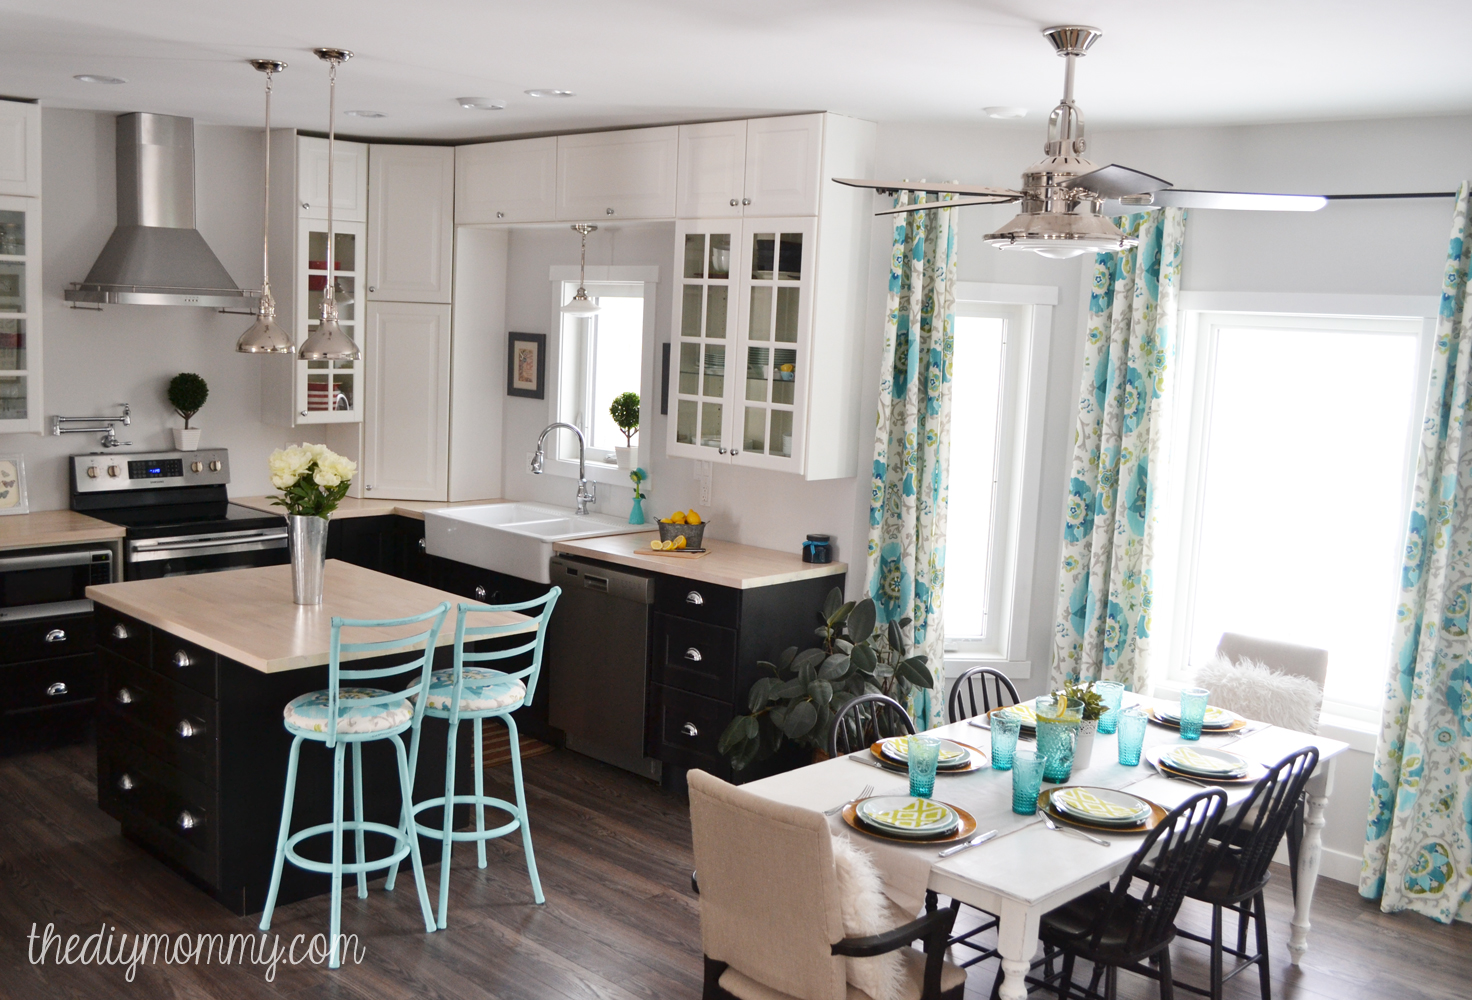 Turquoise Kitchen Design Ideas ~ A black white and turquoise diy kitchen design with ikea